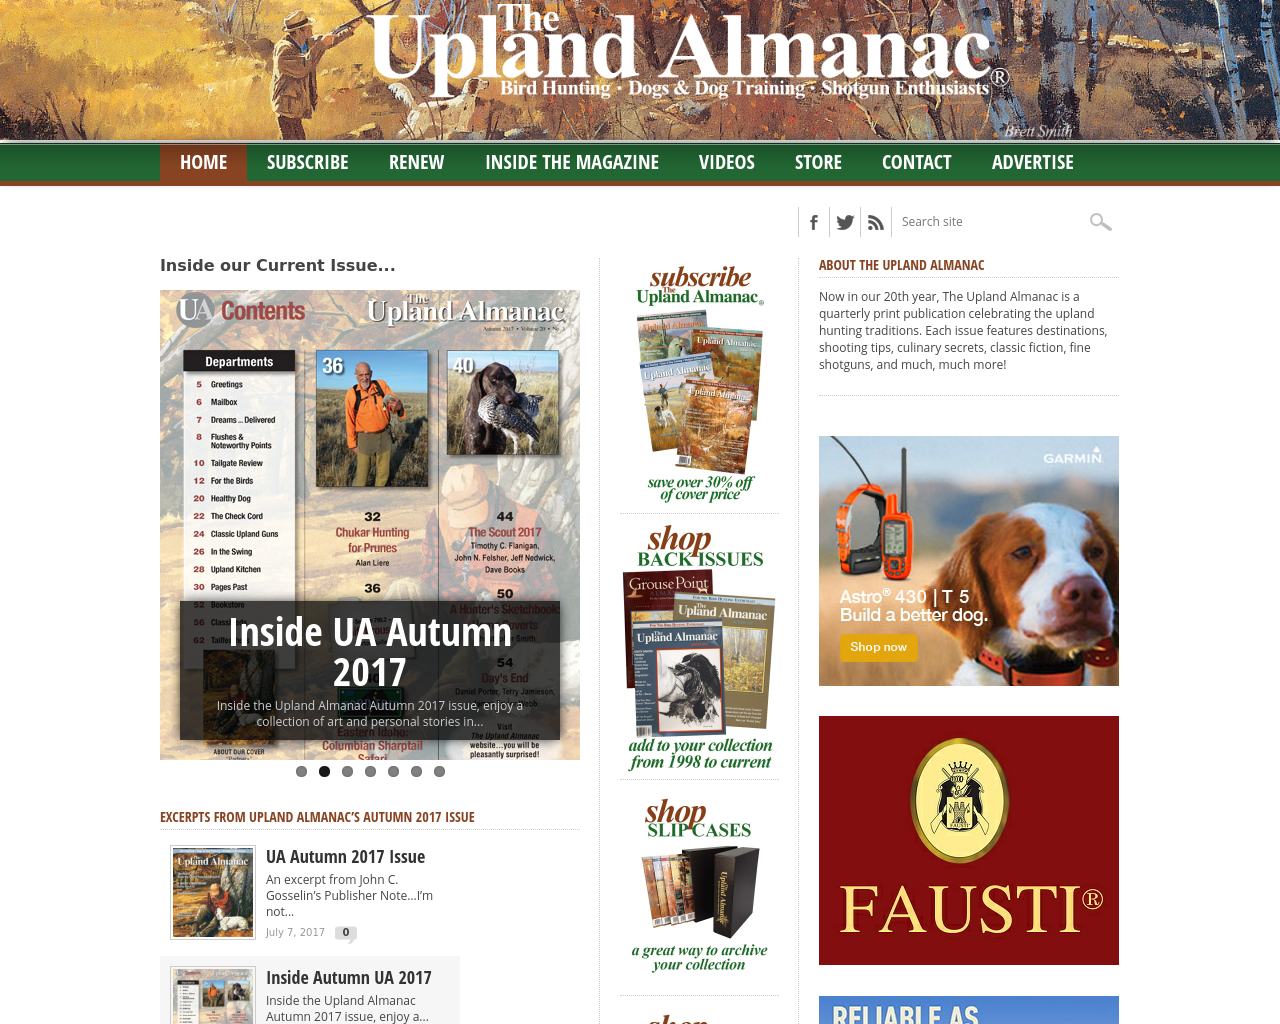 The-Upland-Almanac-Advertising-Reviews-Pricing